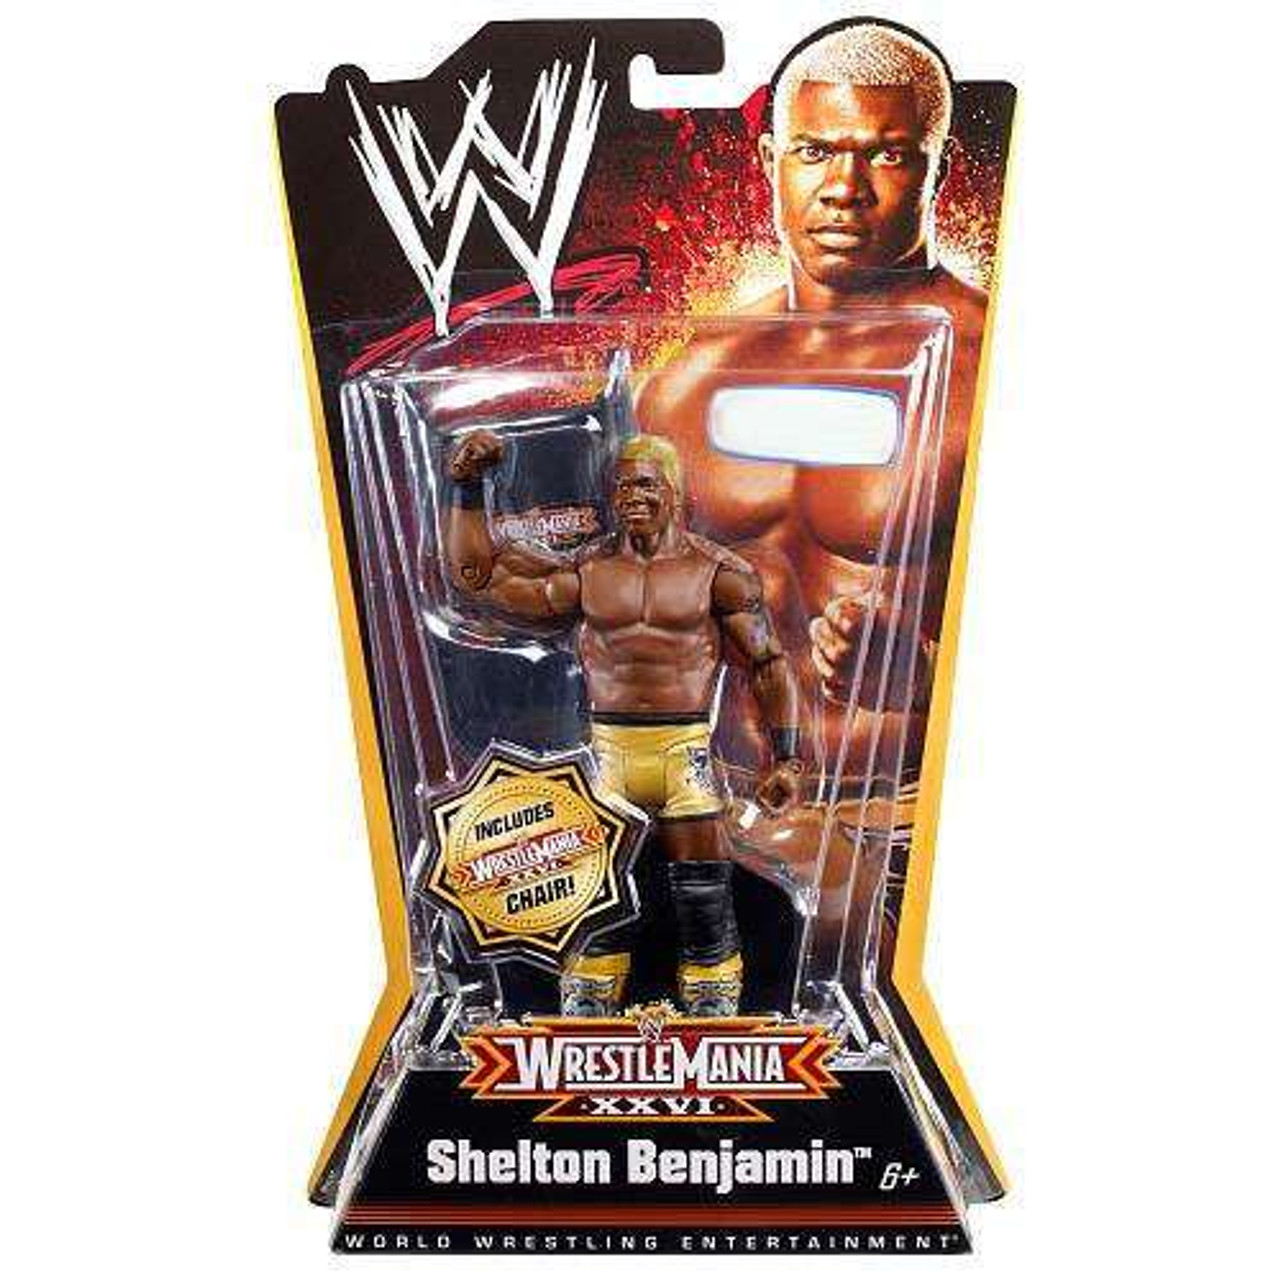 Wwe Wrestling Wrestlemania 26 Shelton Benjamin Exclusive Action